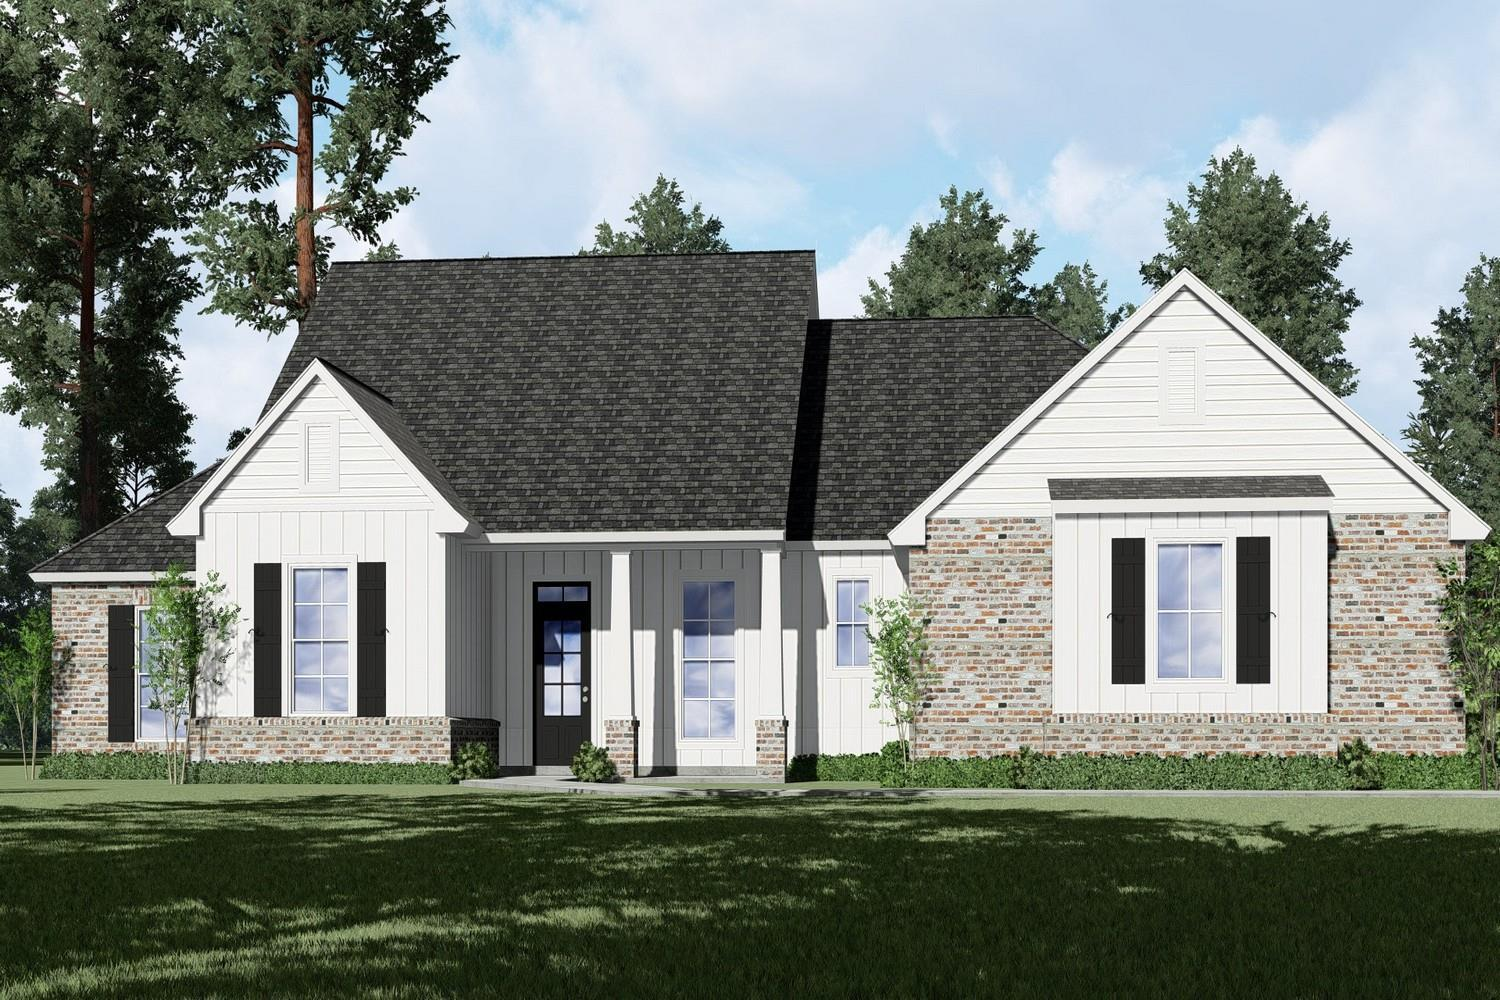 Elevation:Exterior of home